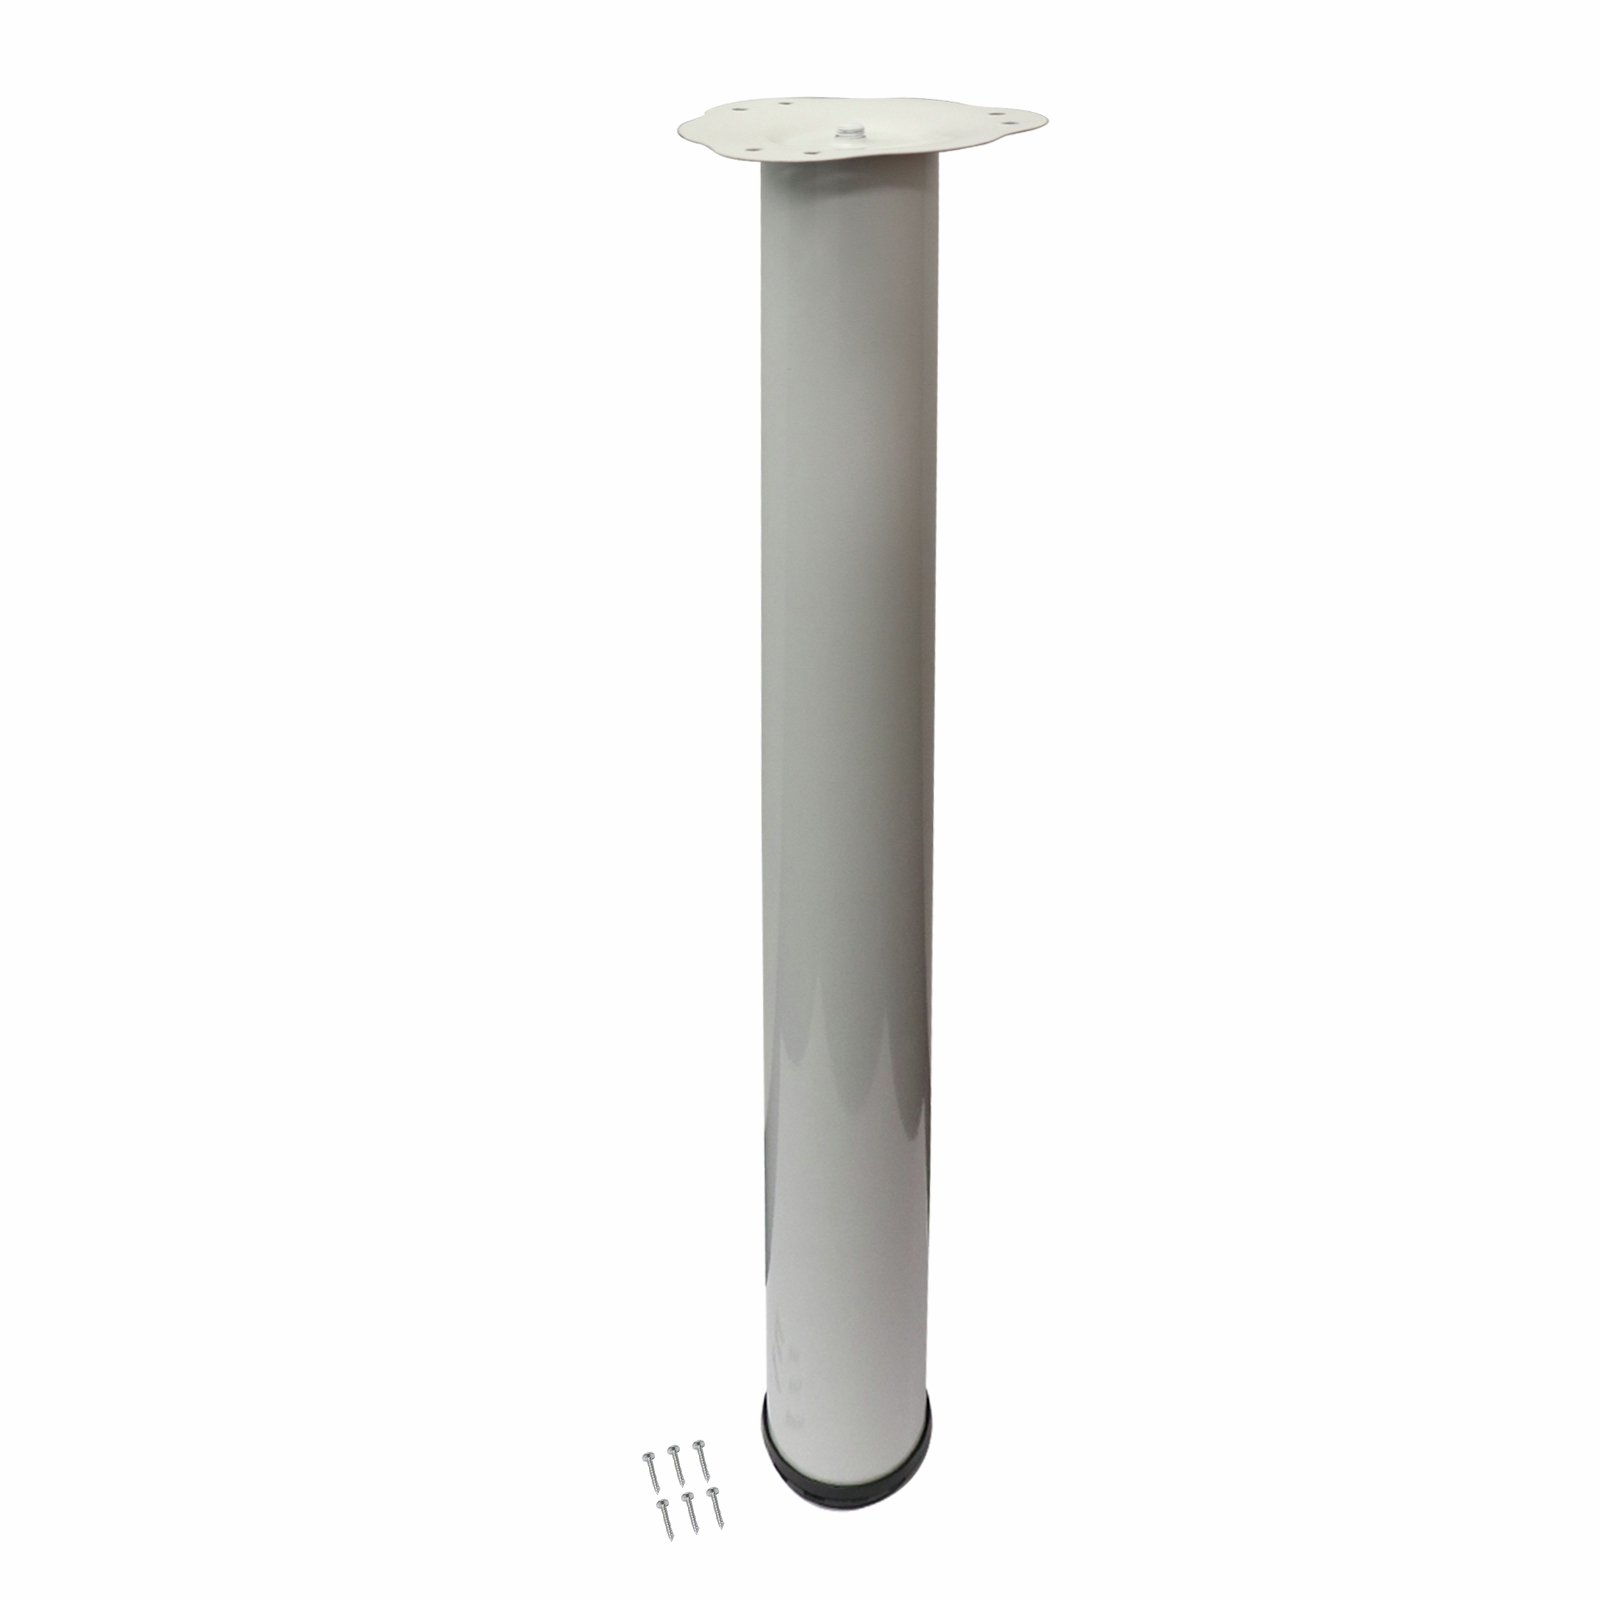 Adoored 60 x 710mm White Round Adjustable Table Leg